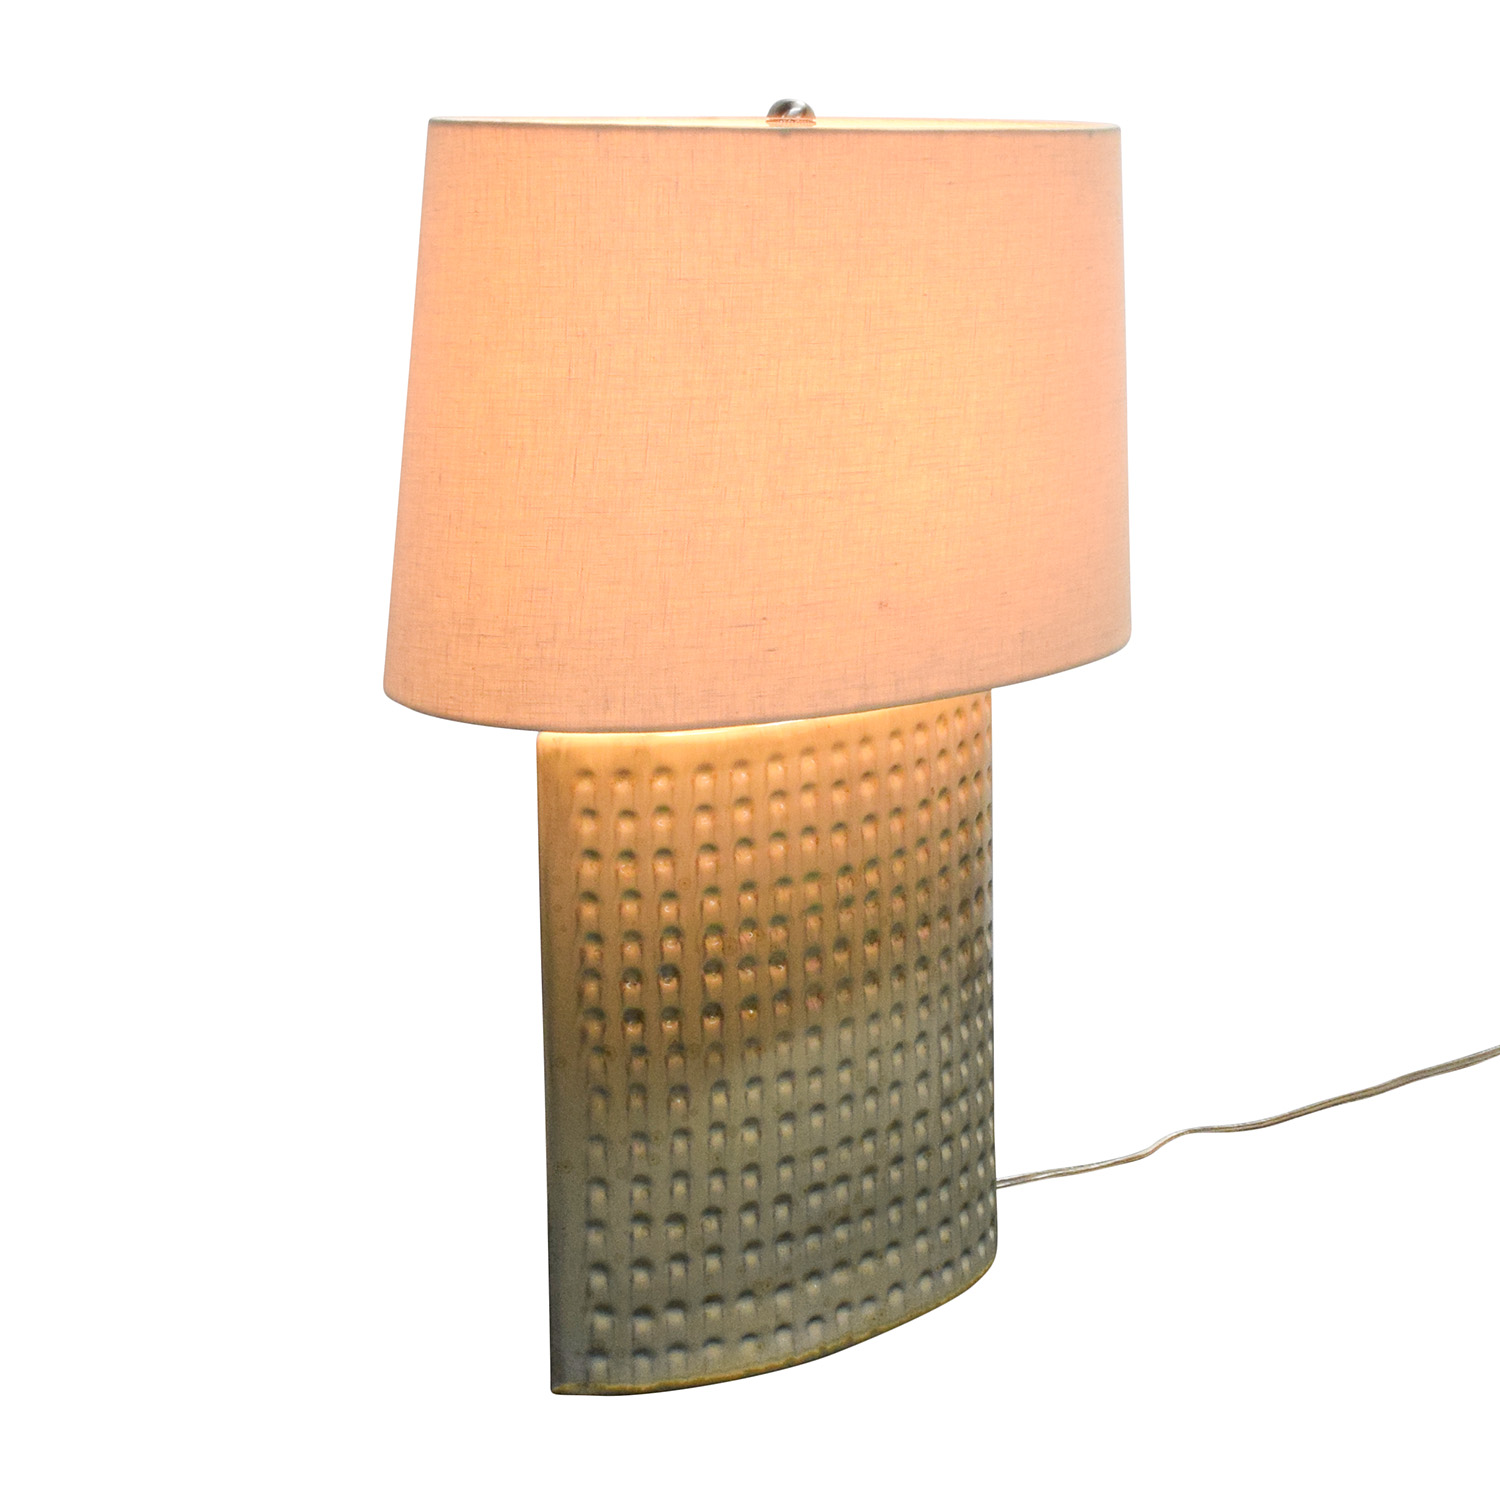 Crate and Barrel Crate & Barrel Ceramic Tatum Lamp nyc